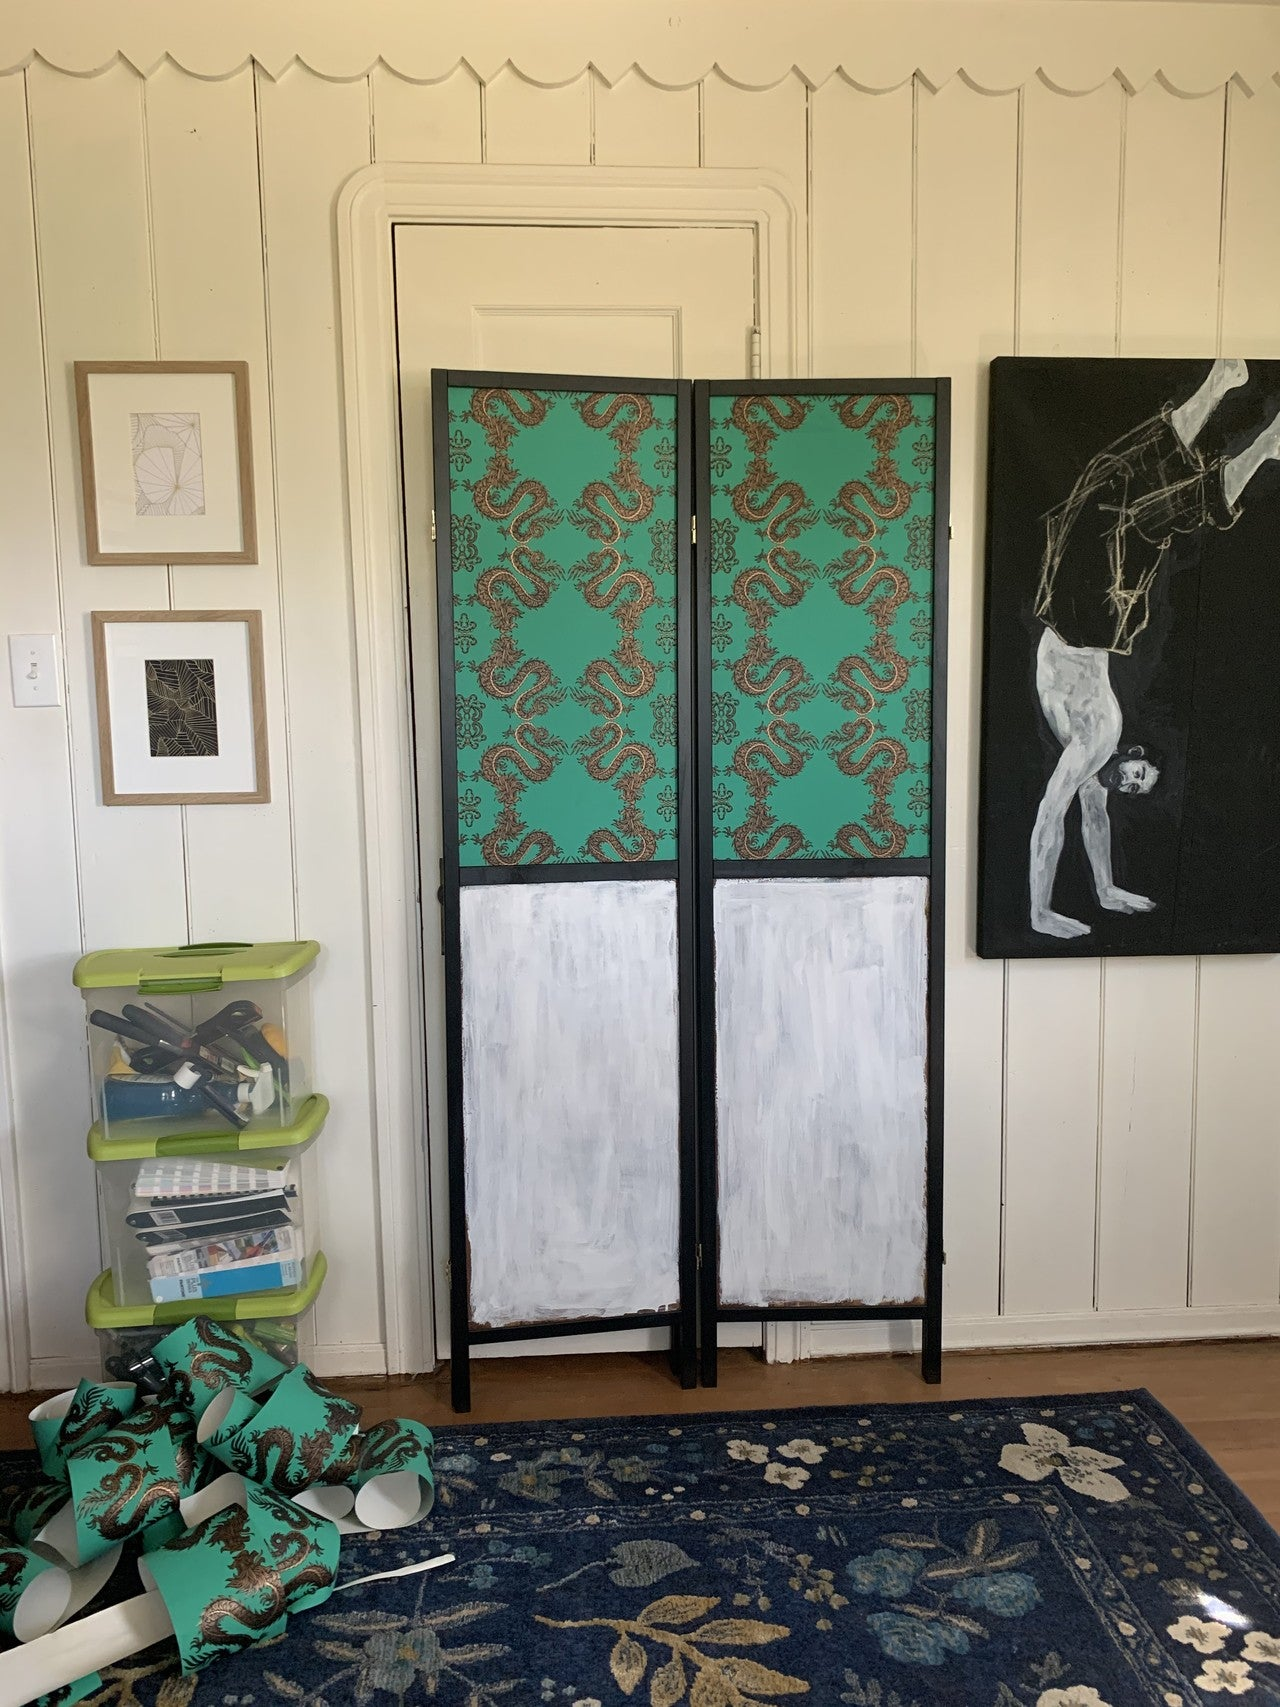 Wallpapered Room Divider Screen | Fortune Emerald | Patch NYC x Hygge & West